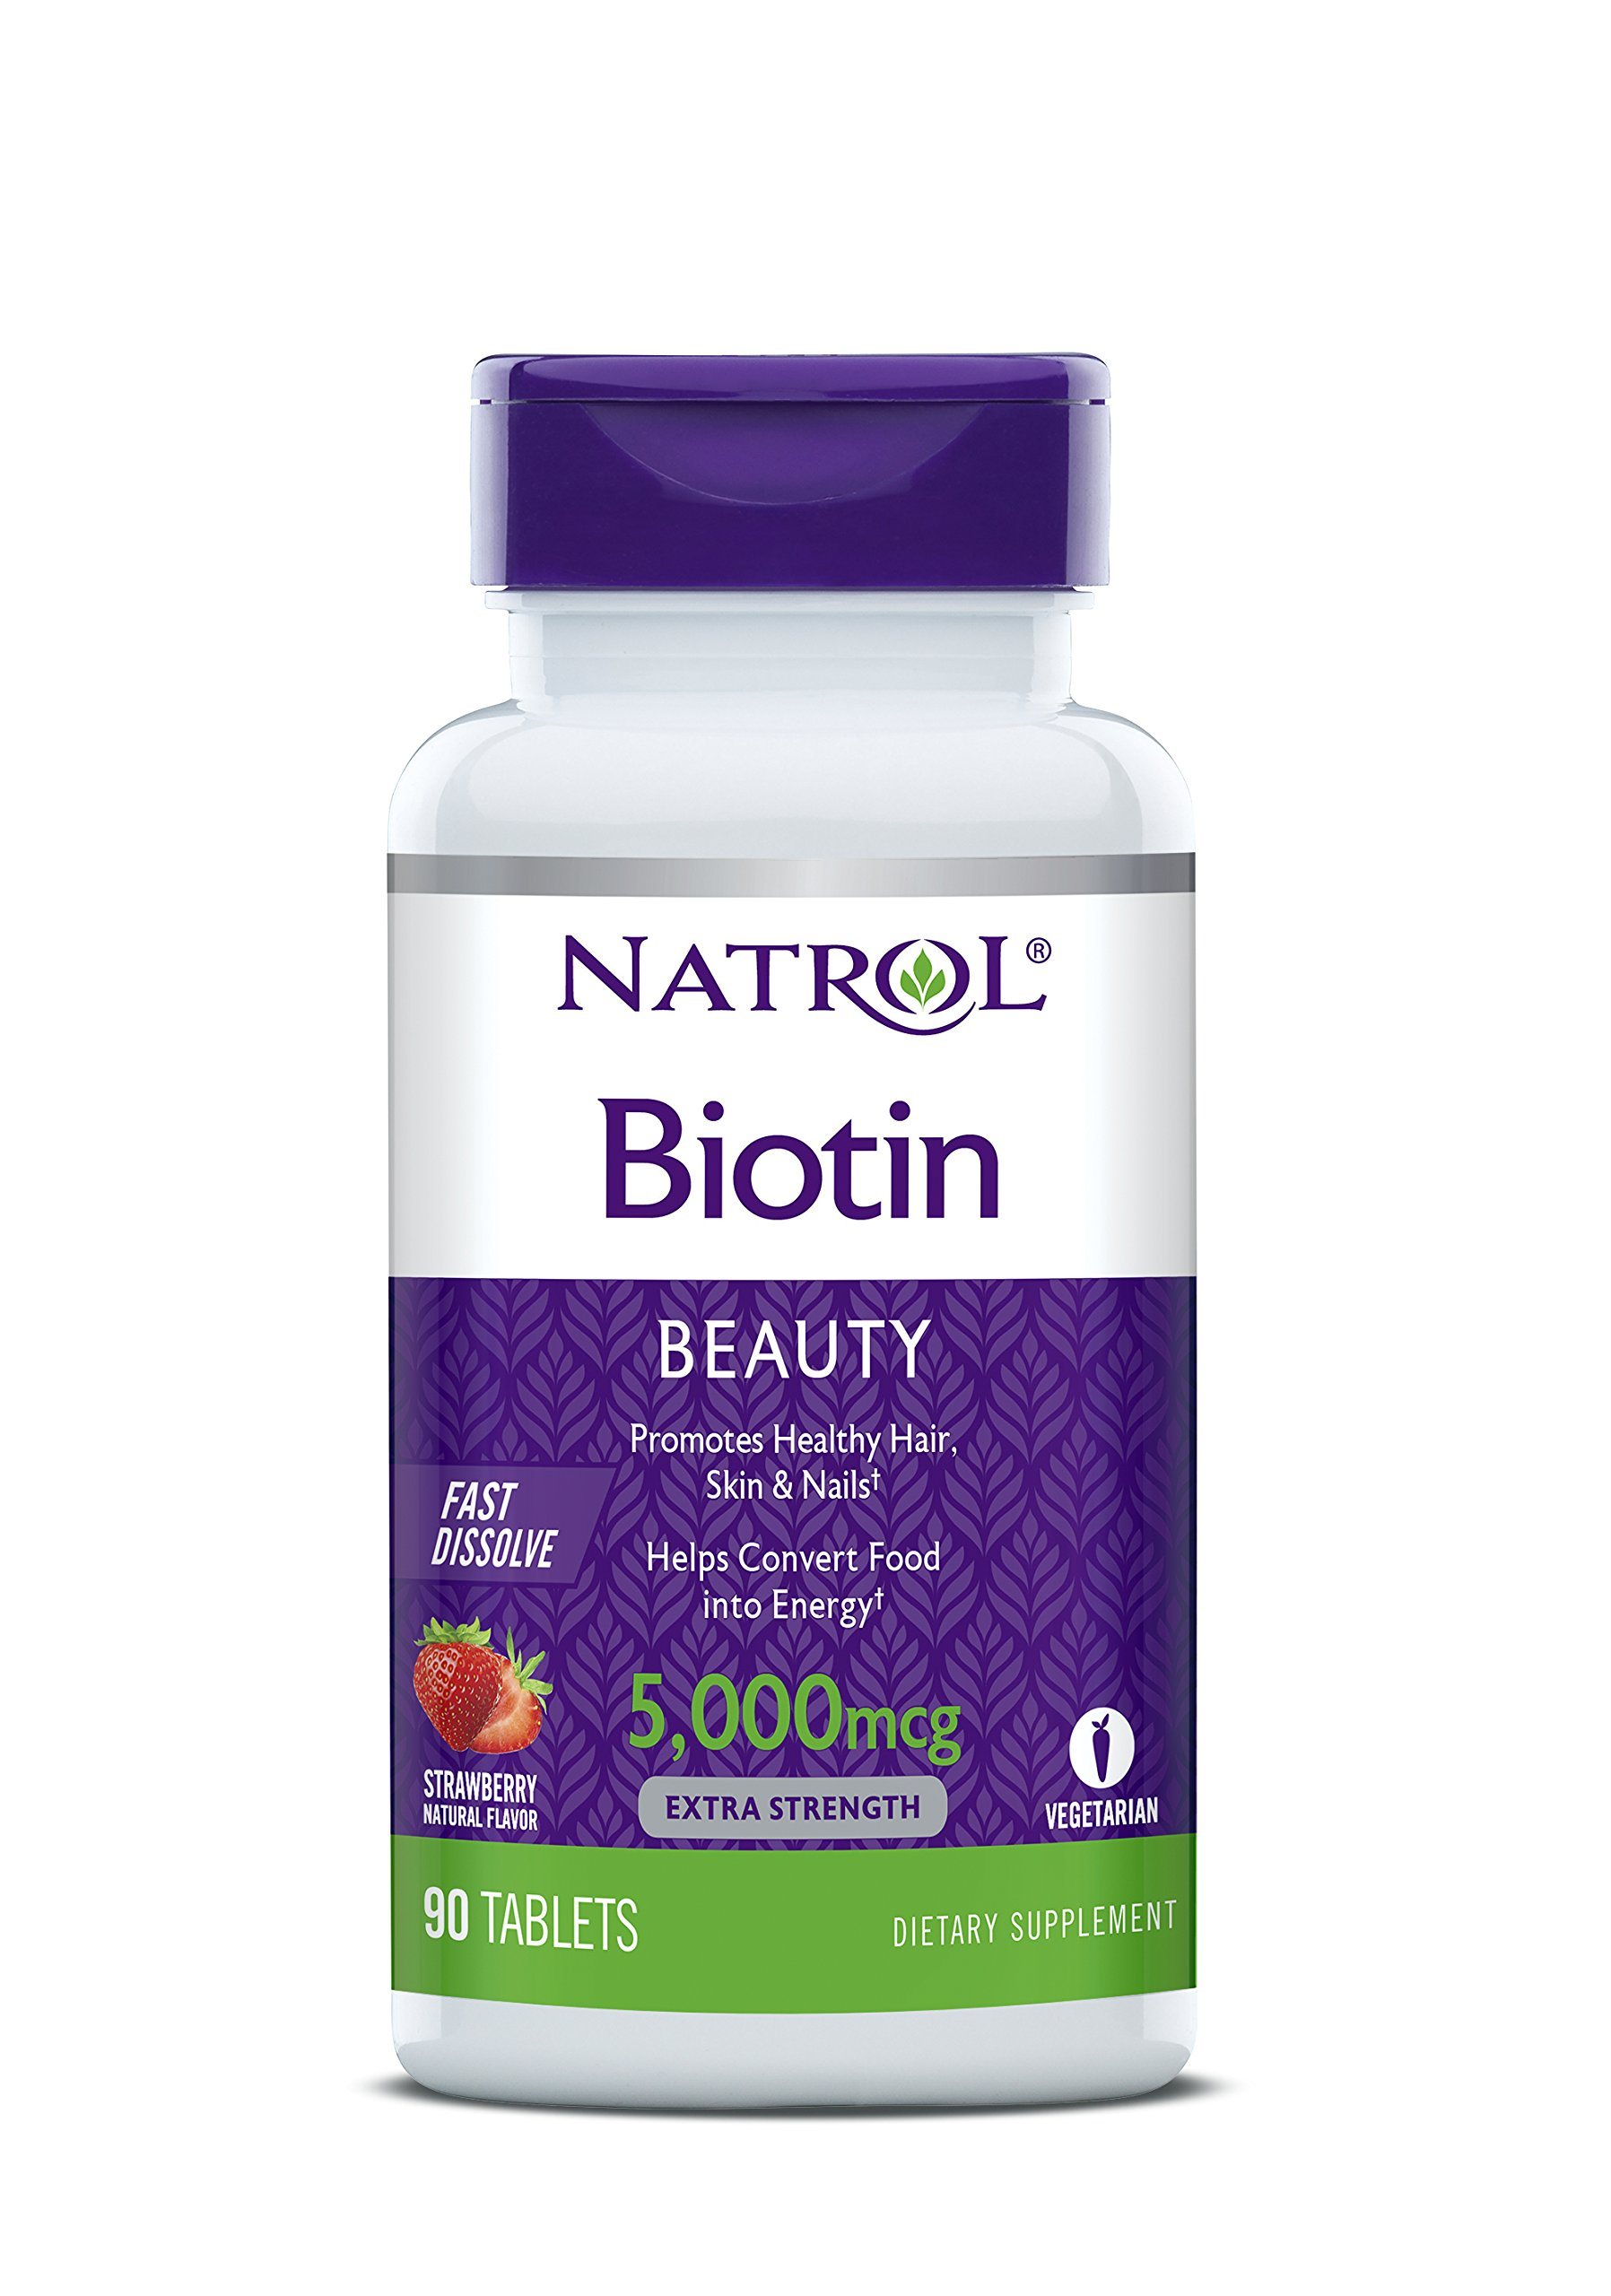 Natrol Biotin Beauty Tablets, Promotes Healthy Hair, Skin and Nails, Helps Support Energy Metabolism, Helps Convert Food Into Energy, 5,000mcg, 90Count